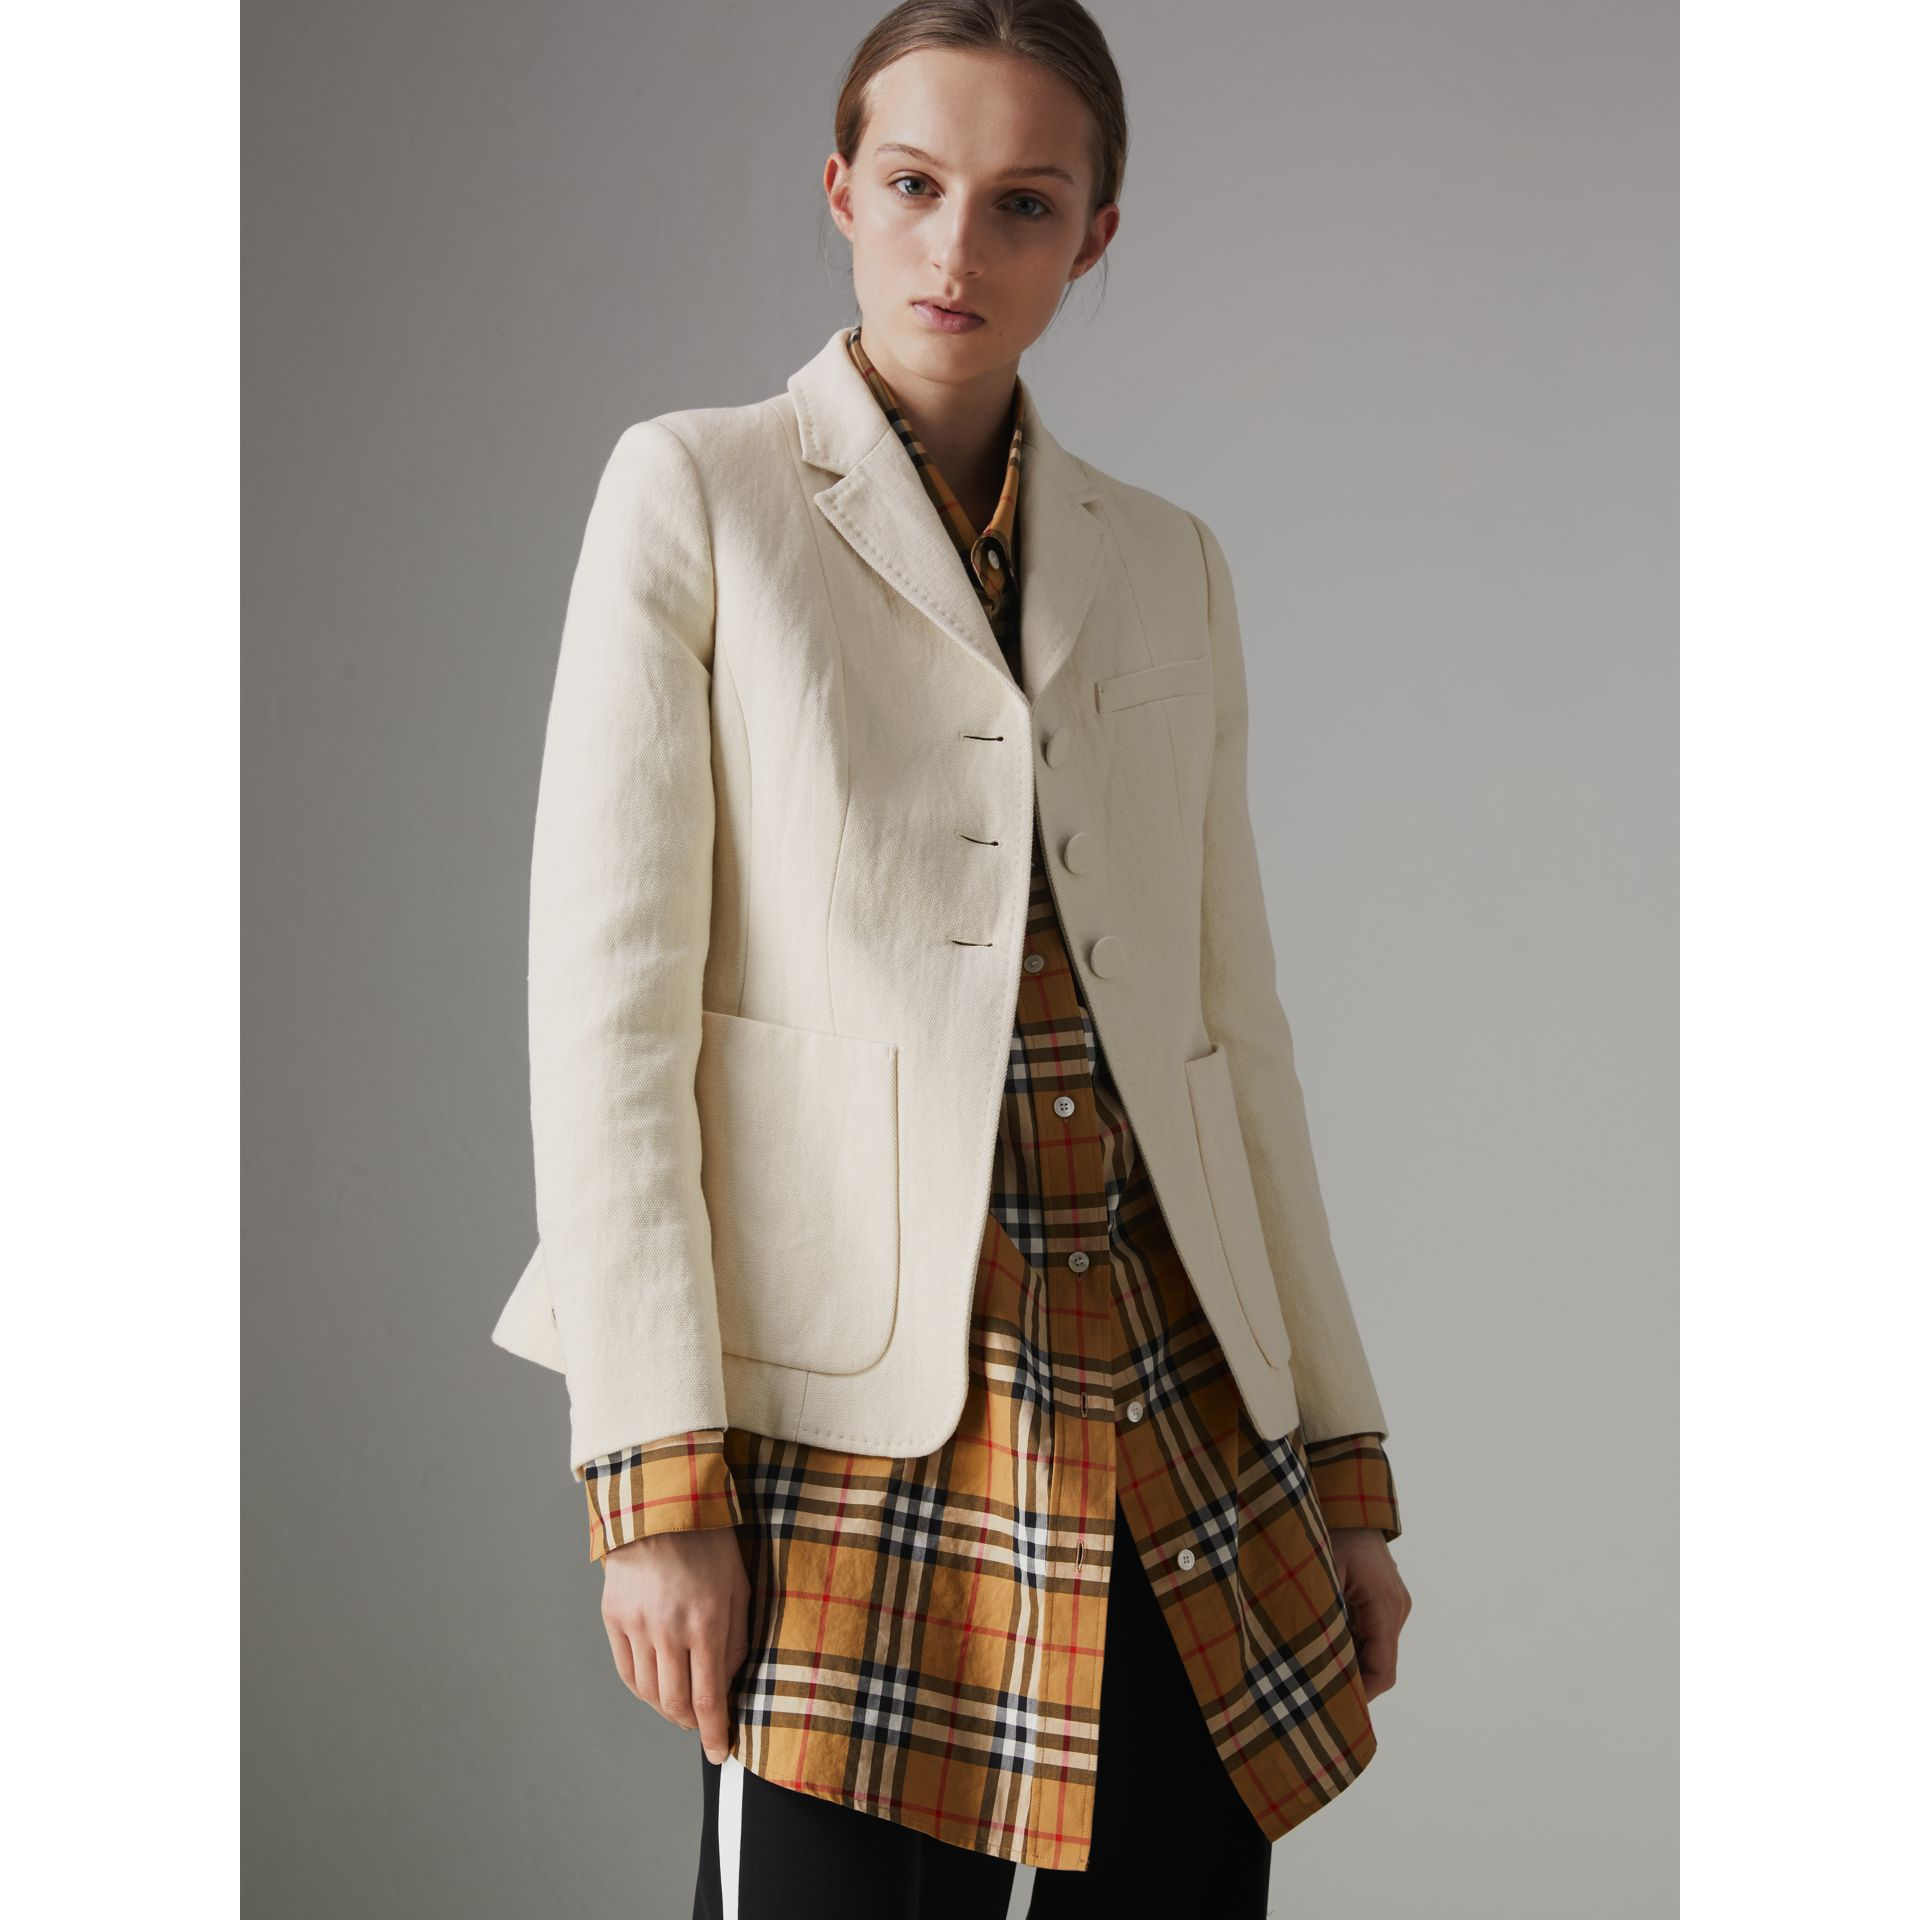 Cotton Linen Fitted Jacket in Off White - Women | Burberry Singapore - gallery image 5